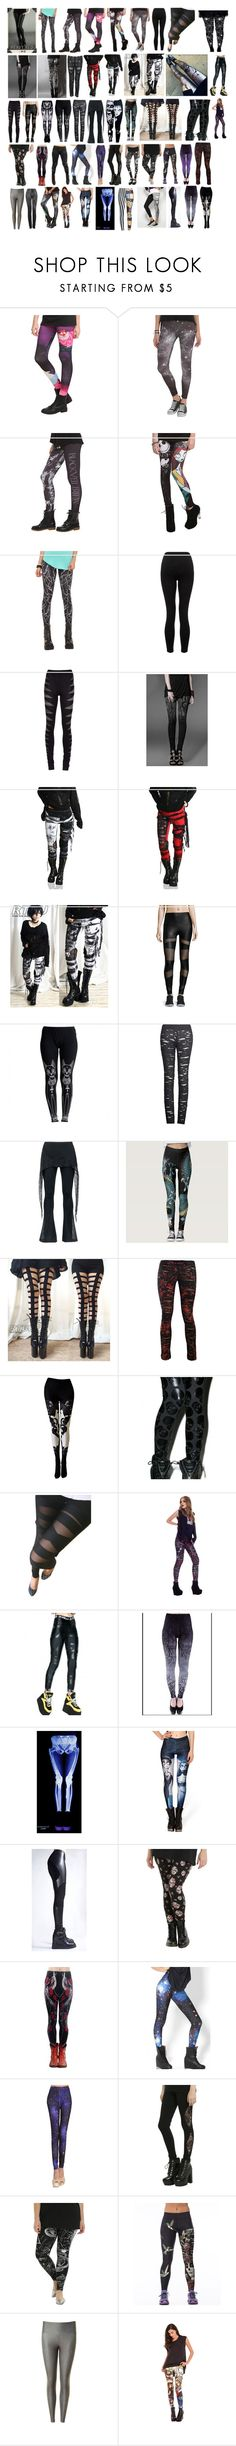 """""""Lanya's Leggings"""" by switchback13 on Polyvore featuring Hot Topic, Lipsy, Rick Owens, Onzie, Killstar, Versace, BADINKA, WithChic and Tiny Fish"""